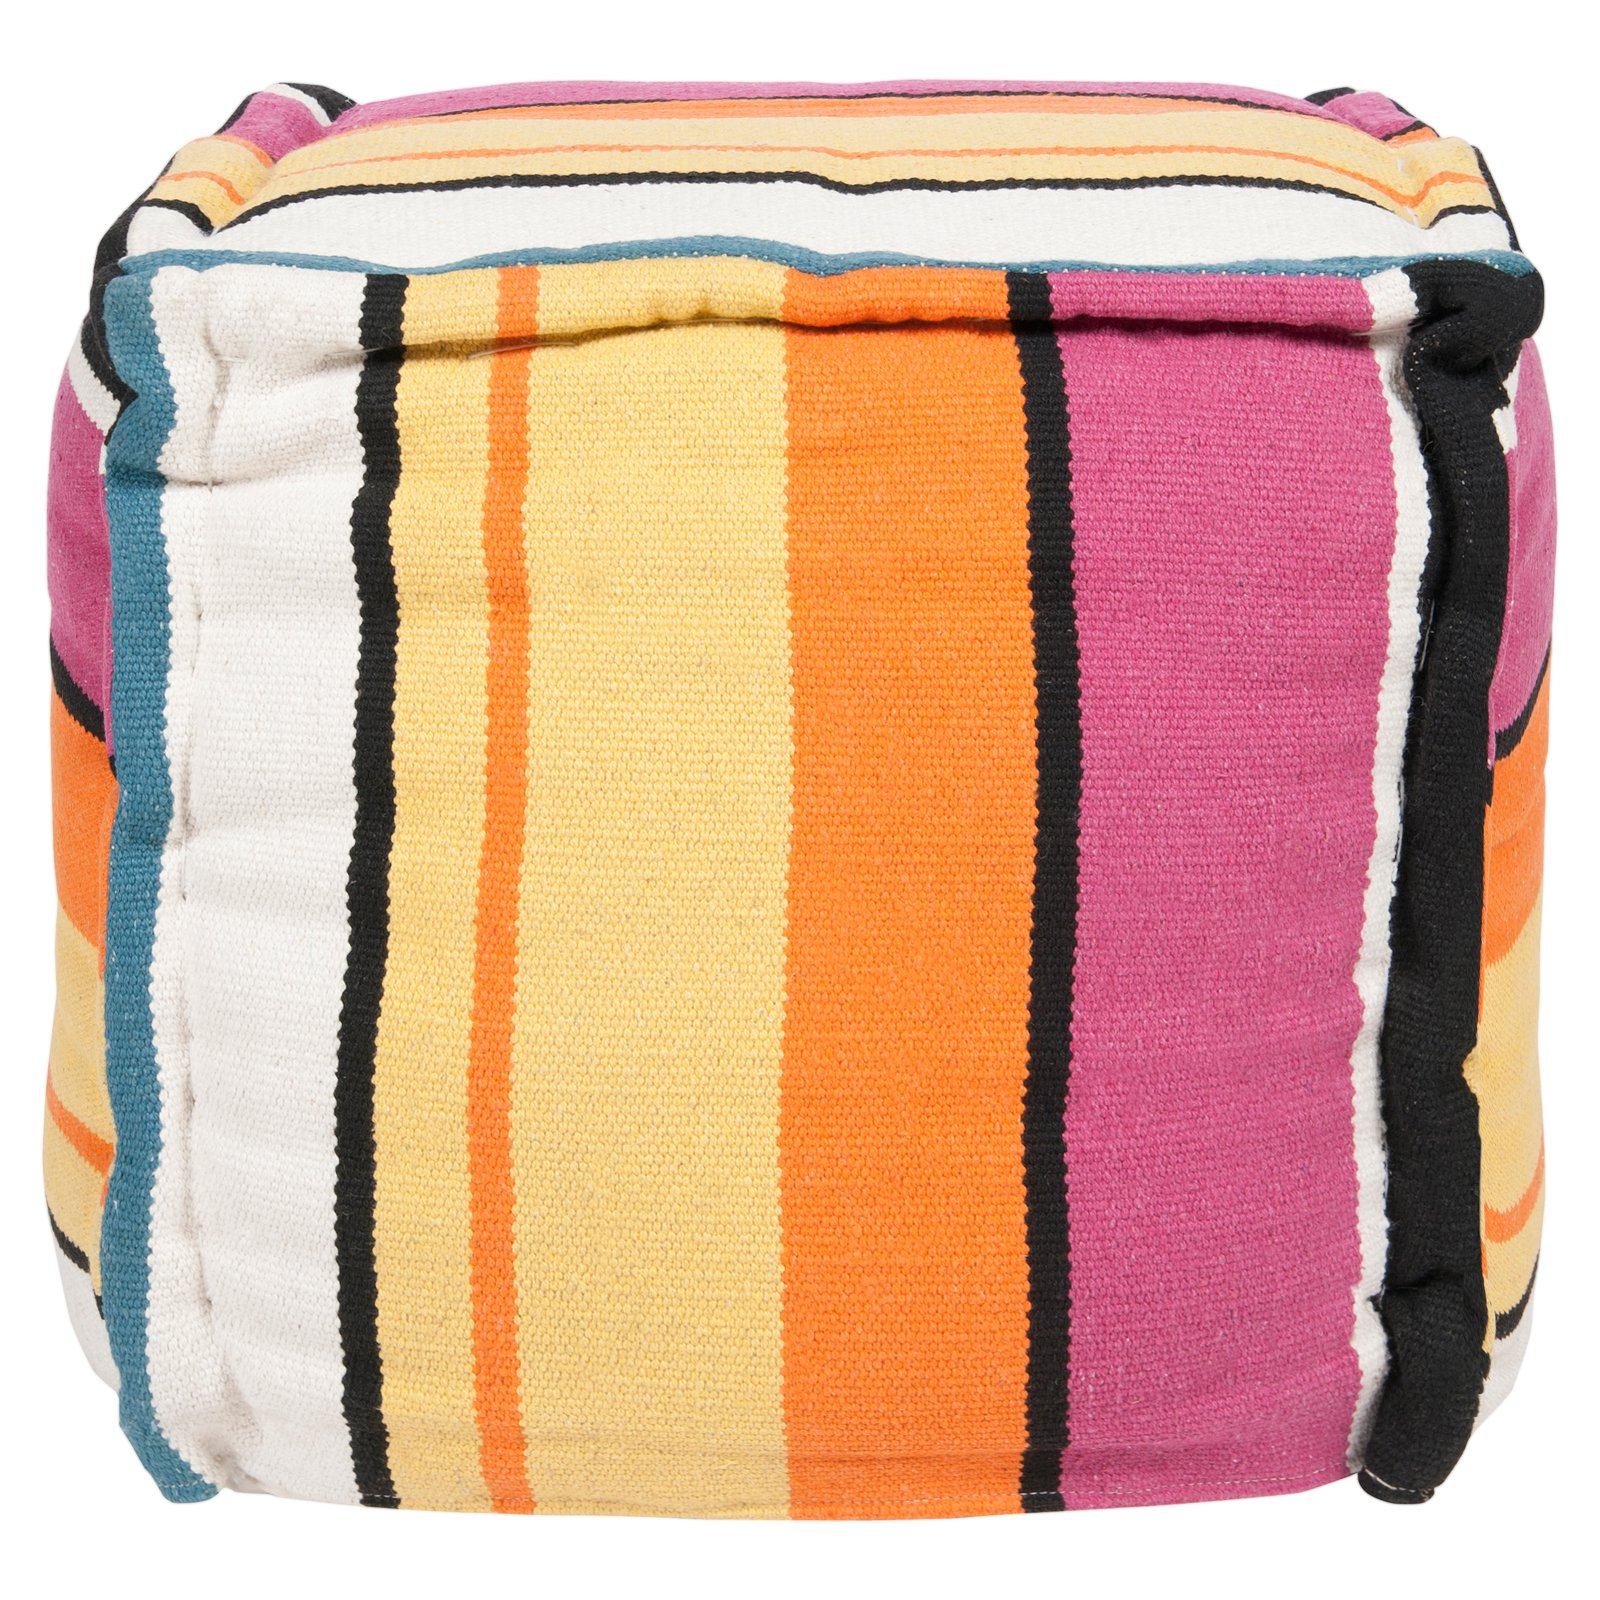 Surya 18 in. Mod Stripe Cube Cotton Pouf by Surya